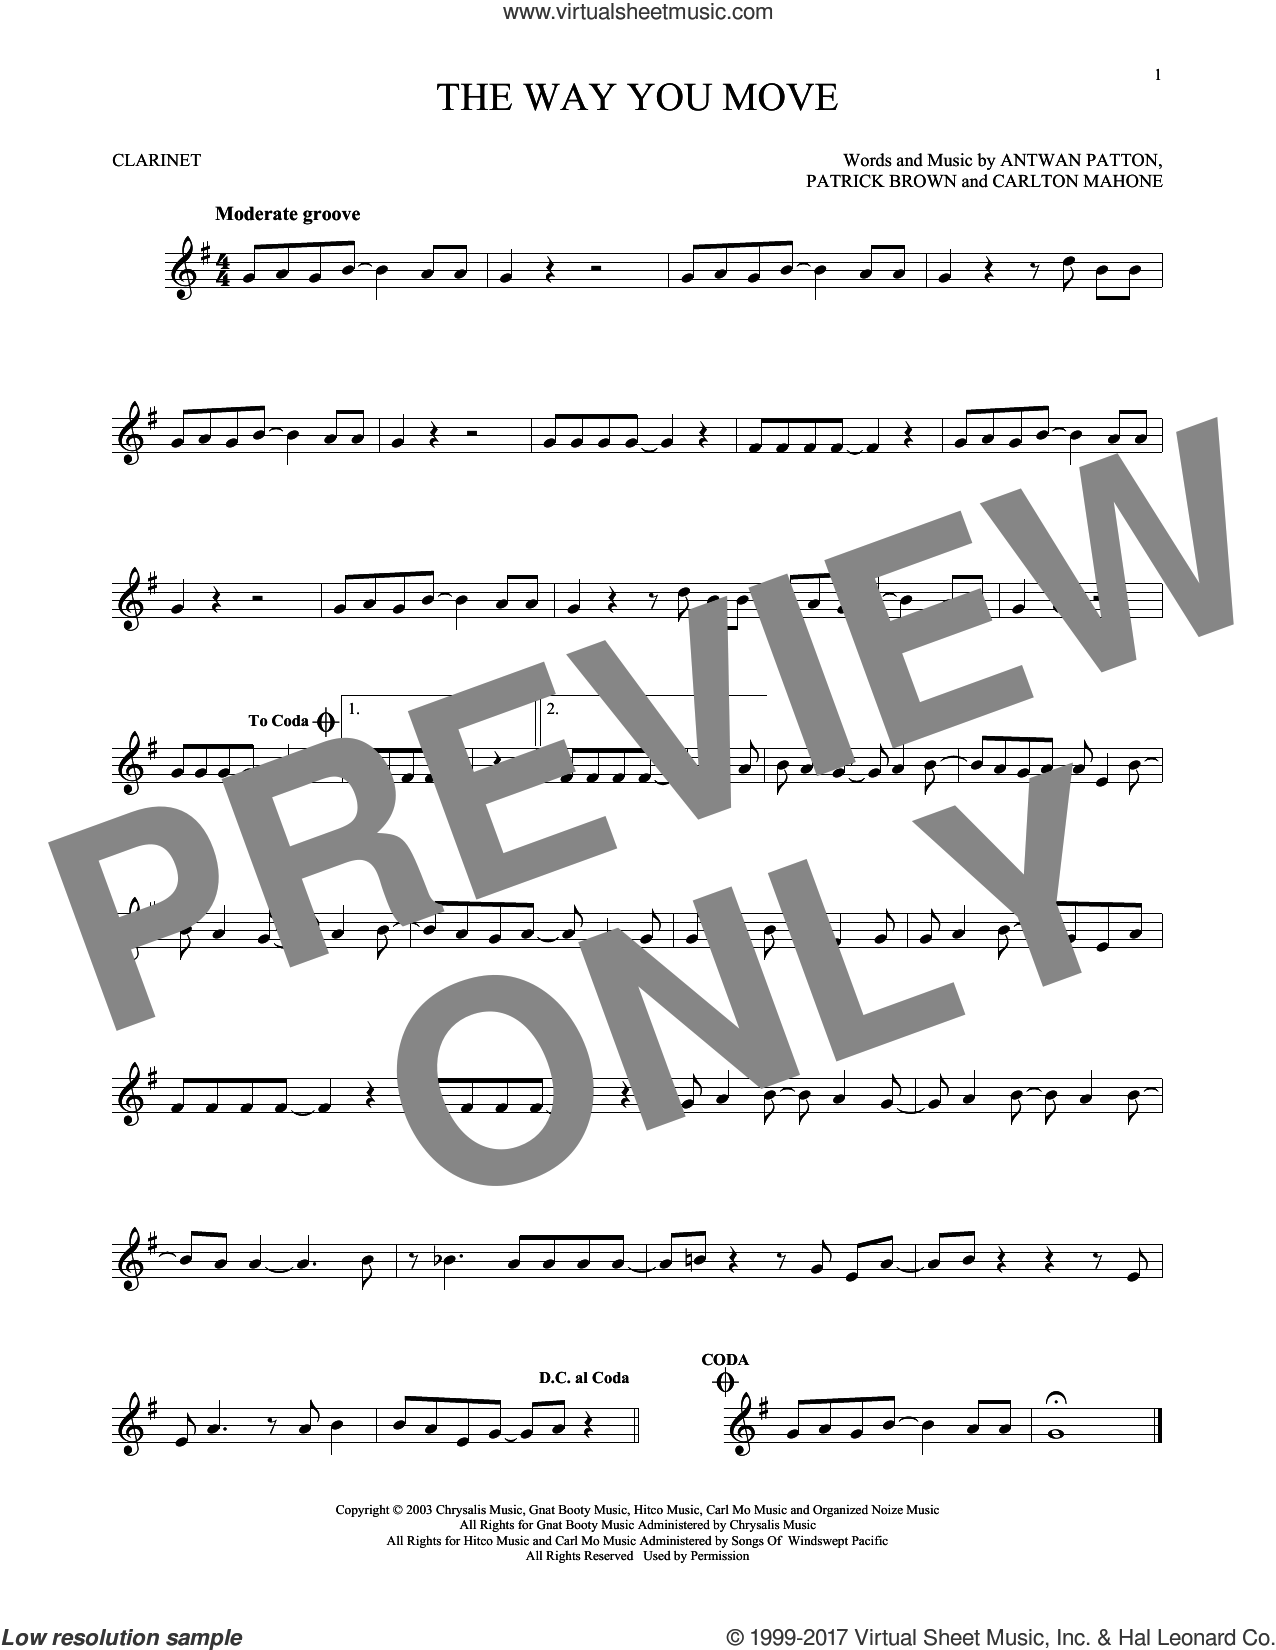 The Way You Move sheet music for clarinet solo by Outkast featuring Sleepy Brown, Antwon Patton, Cartlon Mahone and Patrick Brown, intermediate